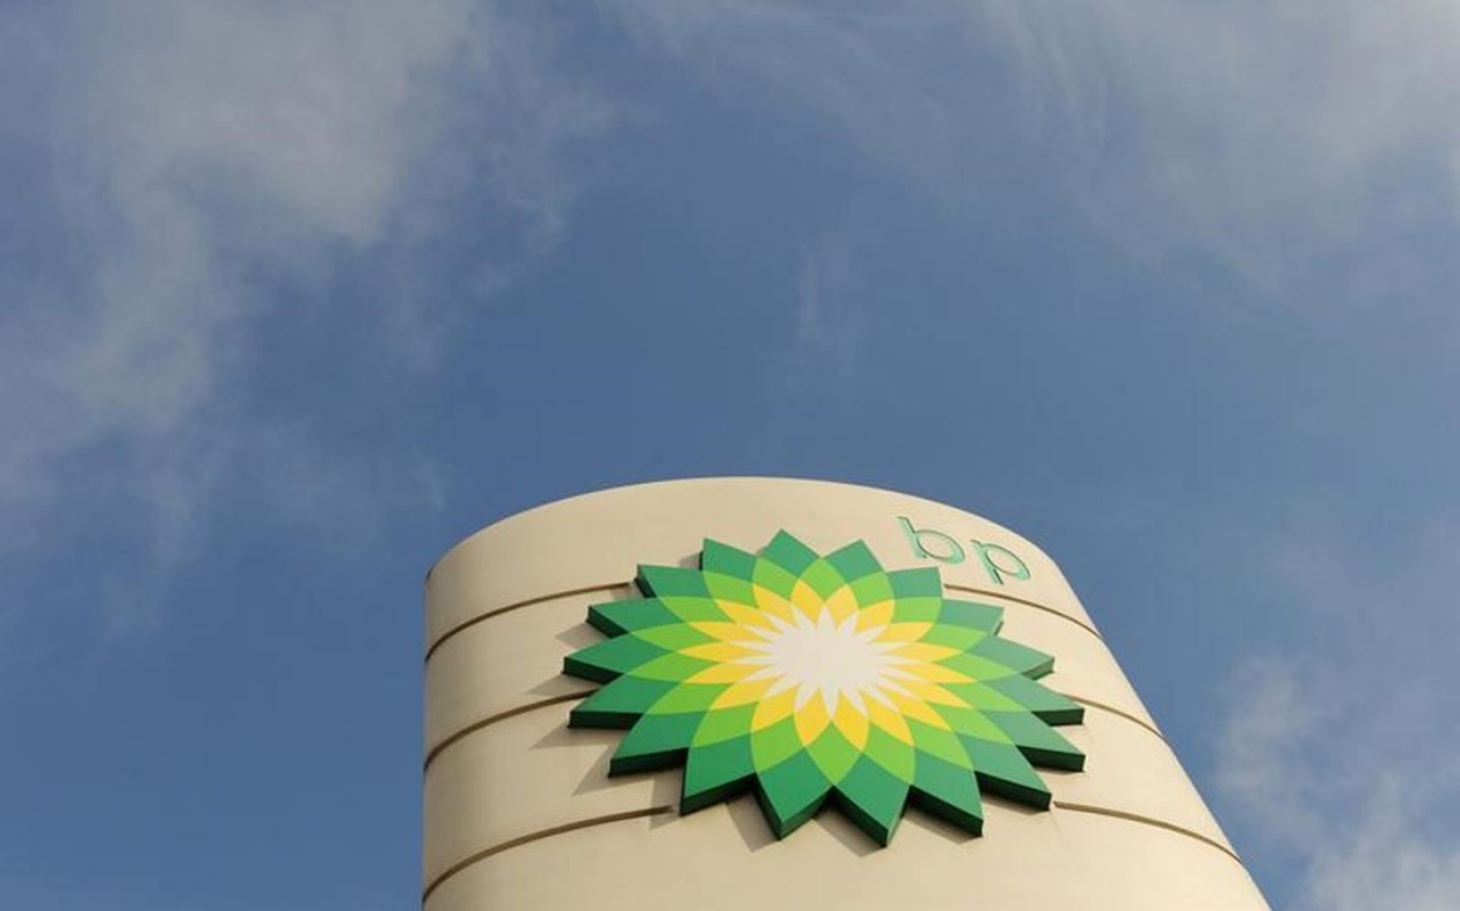 bp faces up to 13 7 billion in fines for gulf oil spill al bp faces up to 13 7 billion in fines for gulf oil spill al jazeera america